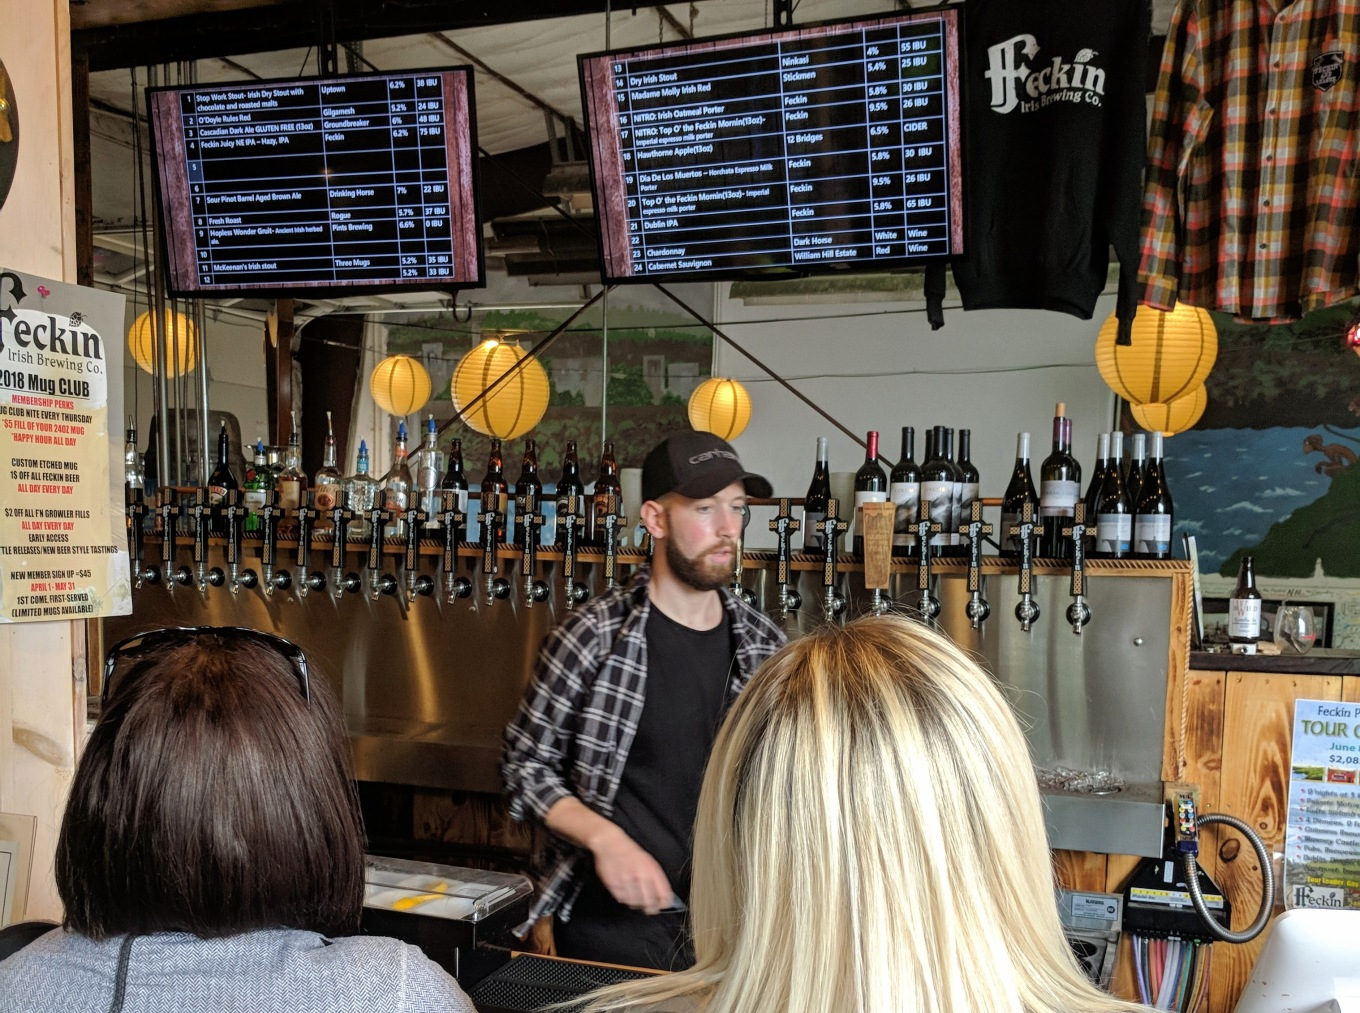 Feckin Brewery Taproom Tap List Oregon City